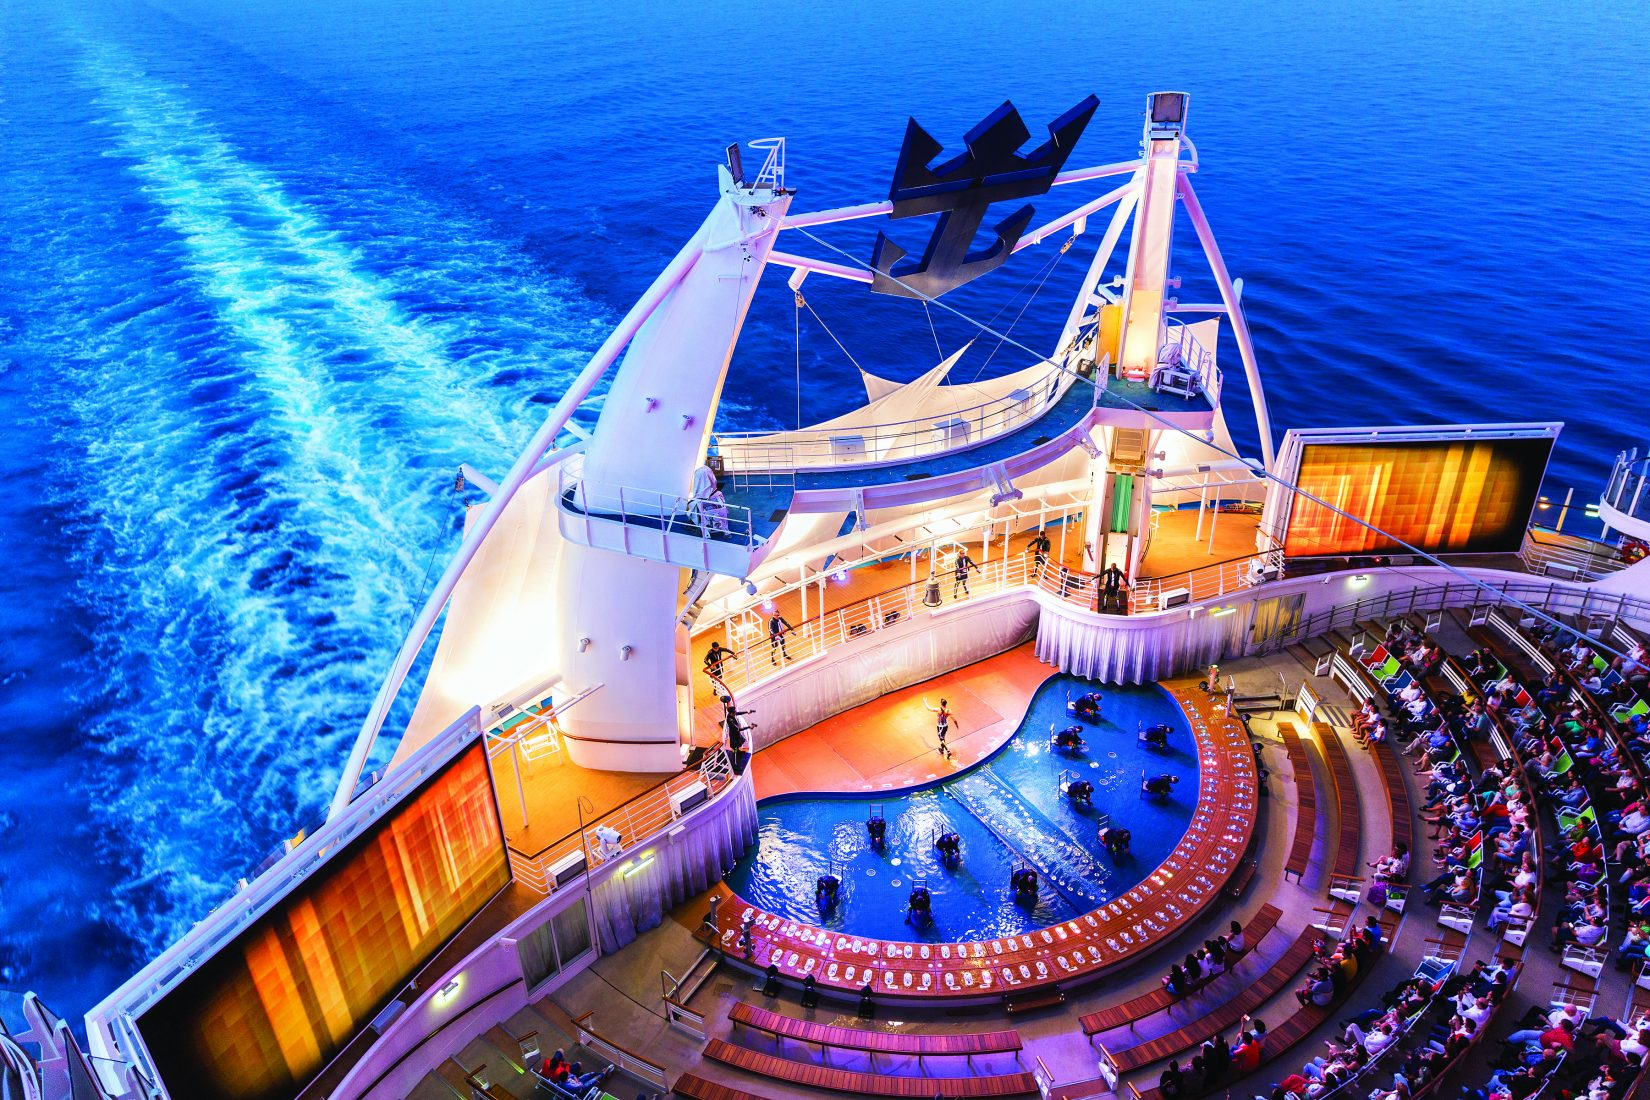 AquaTheater Shows na lodi Allure of the Seas.